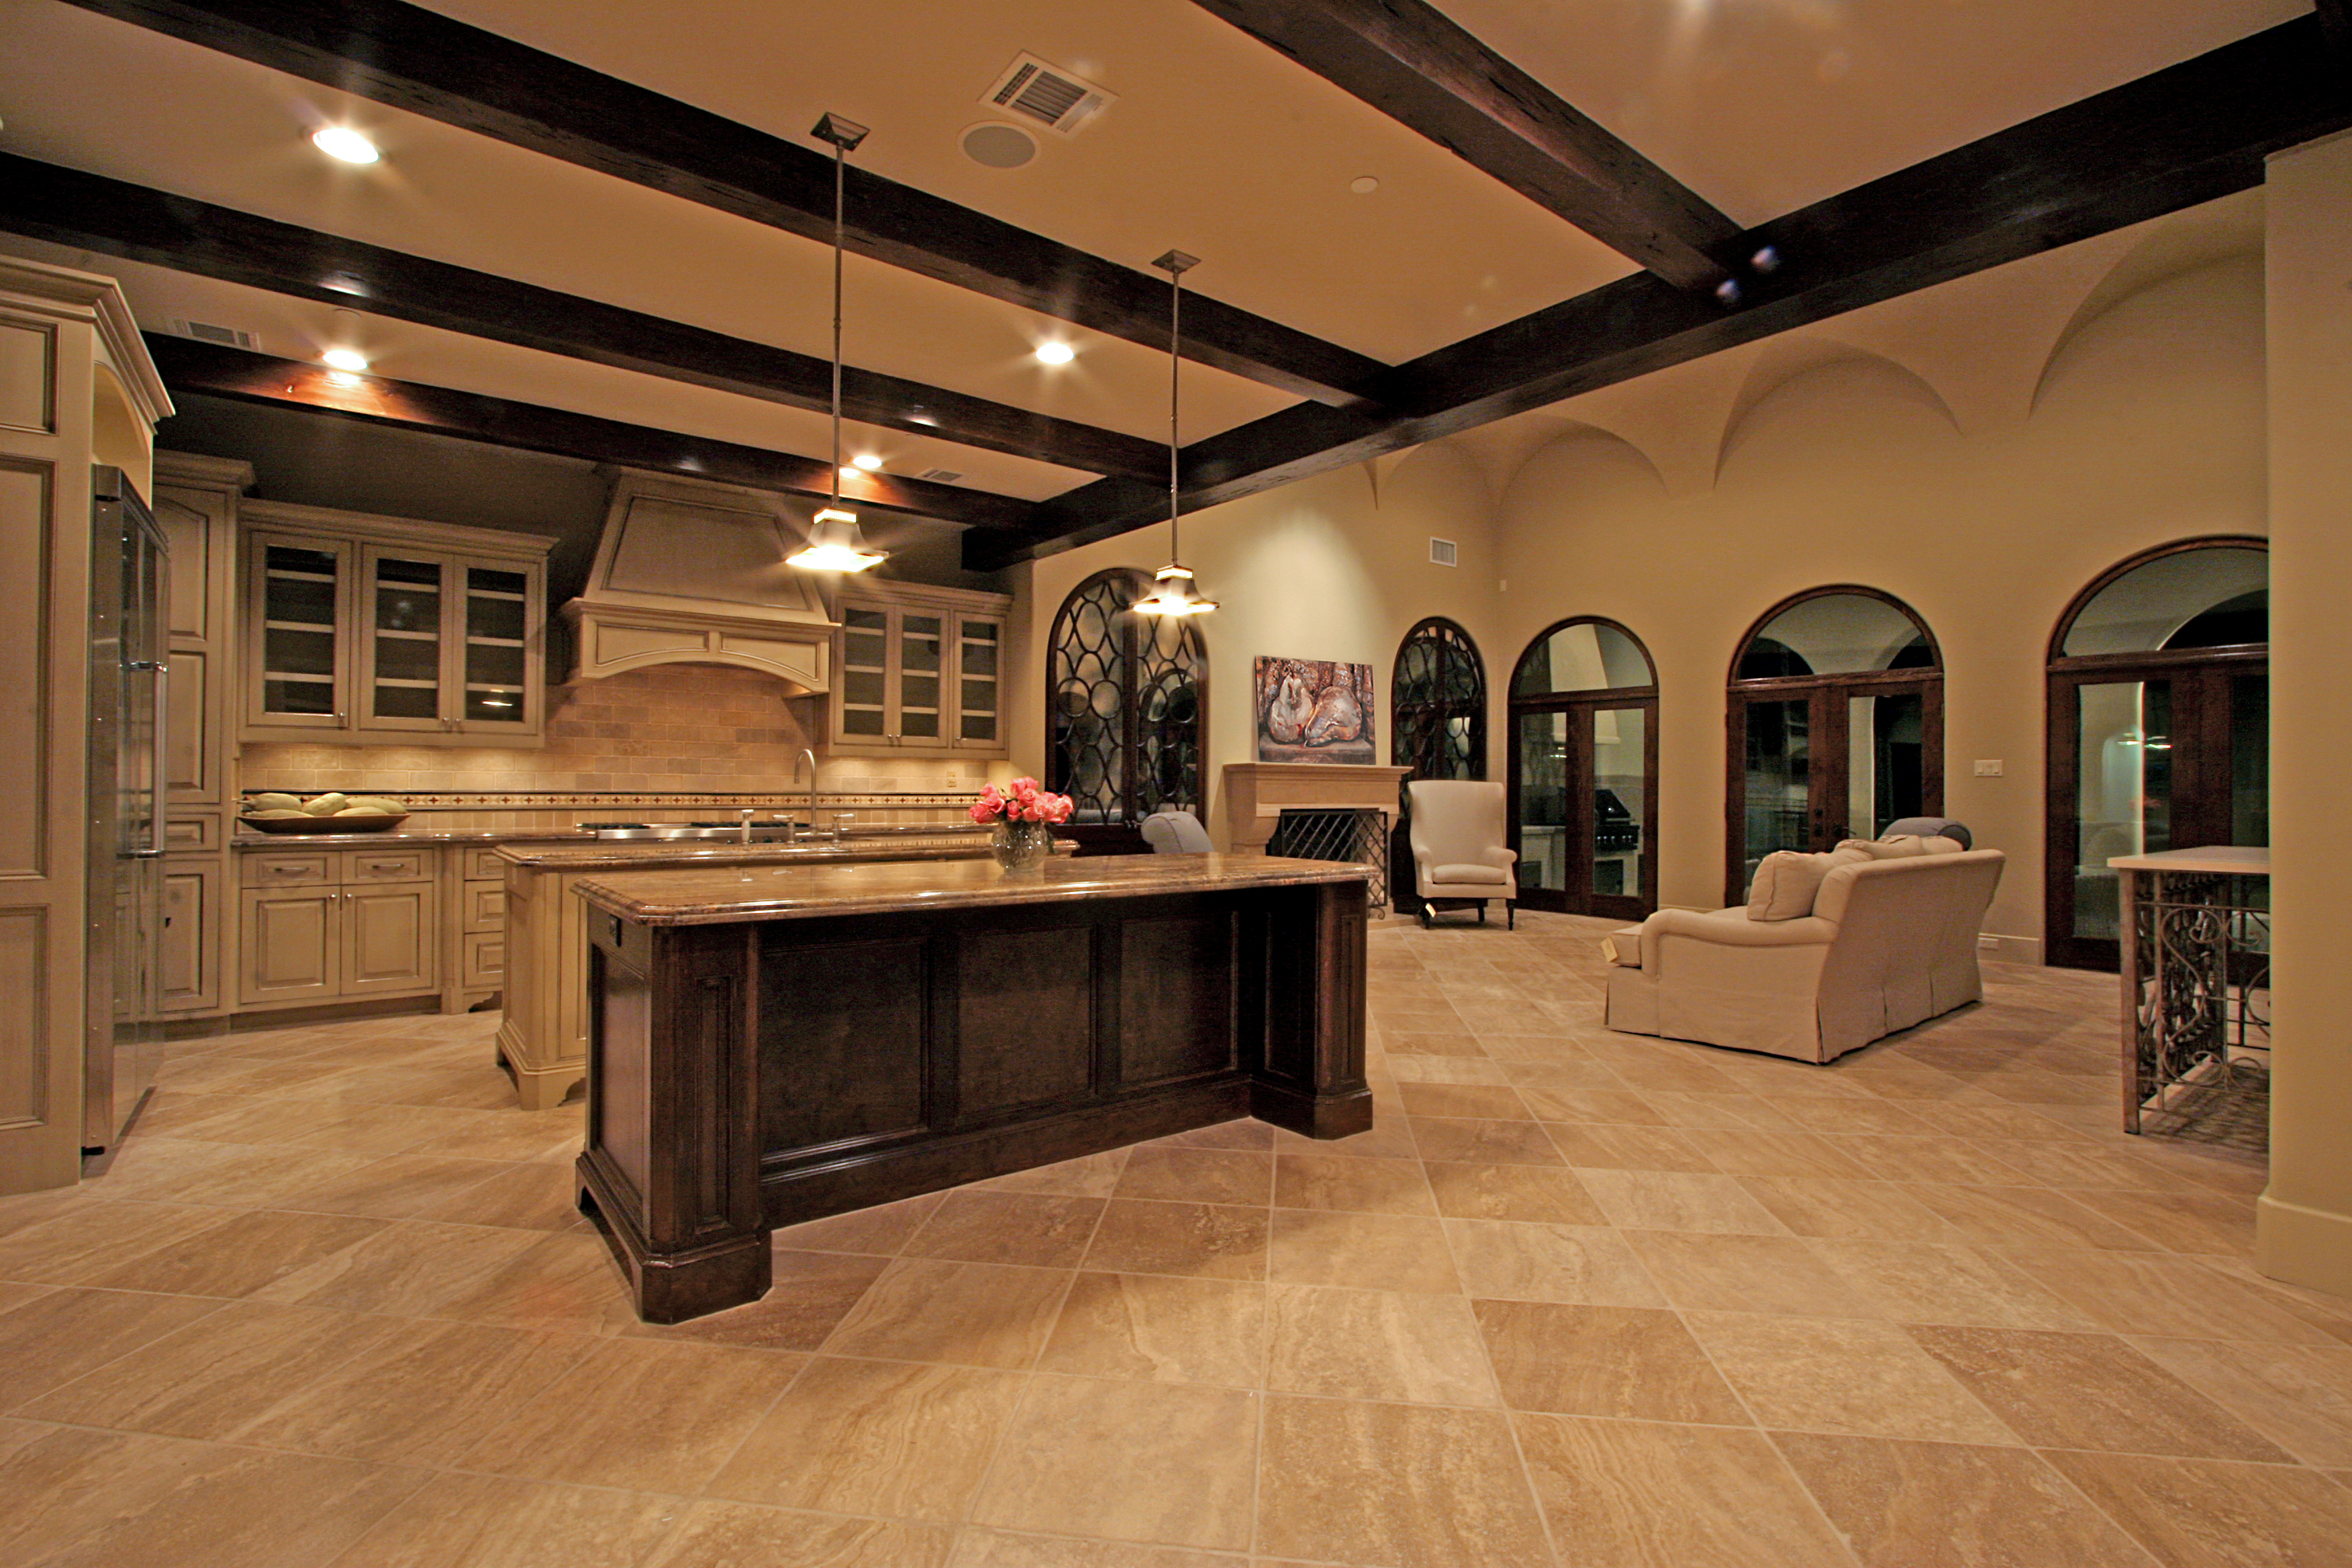 bellaire showcase home 2007 by watermark builders kitchen with published december 18 2011 at 3504 2336 in